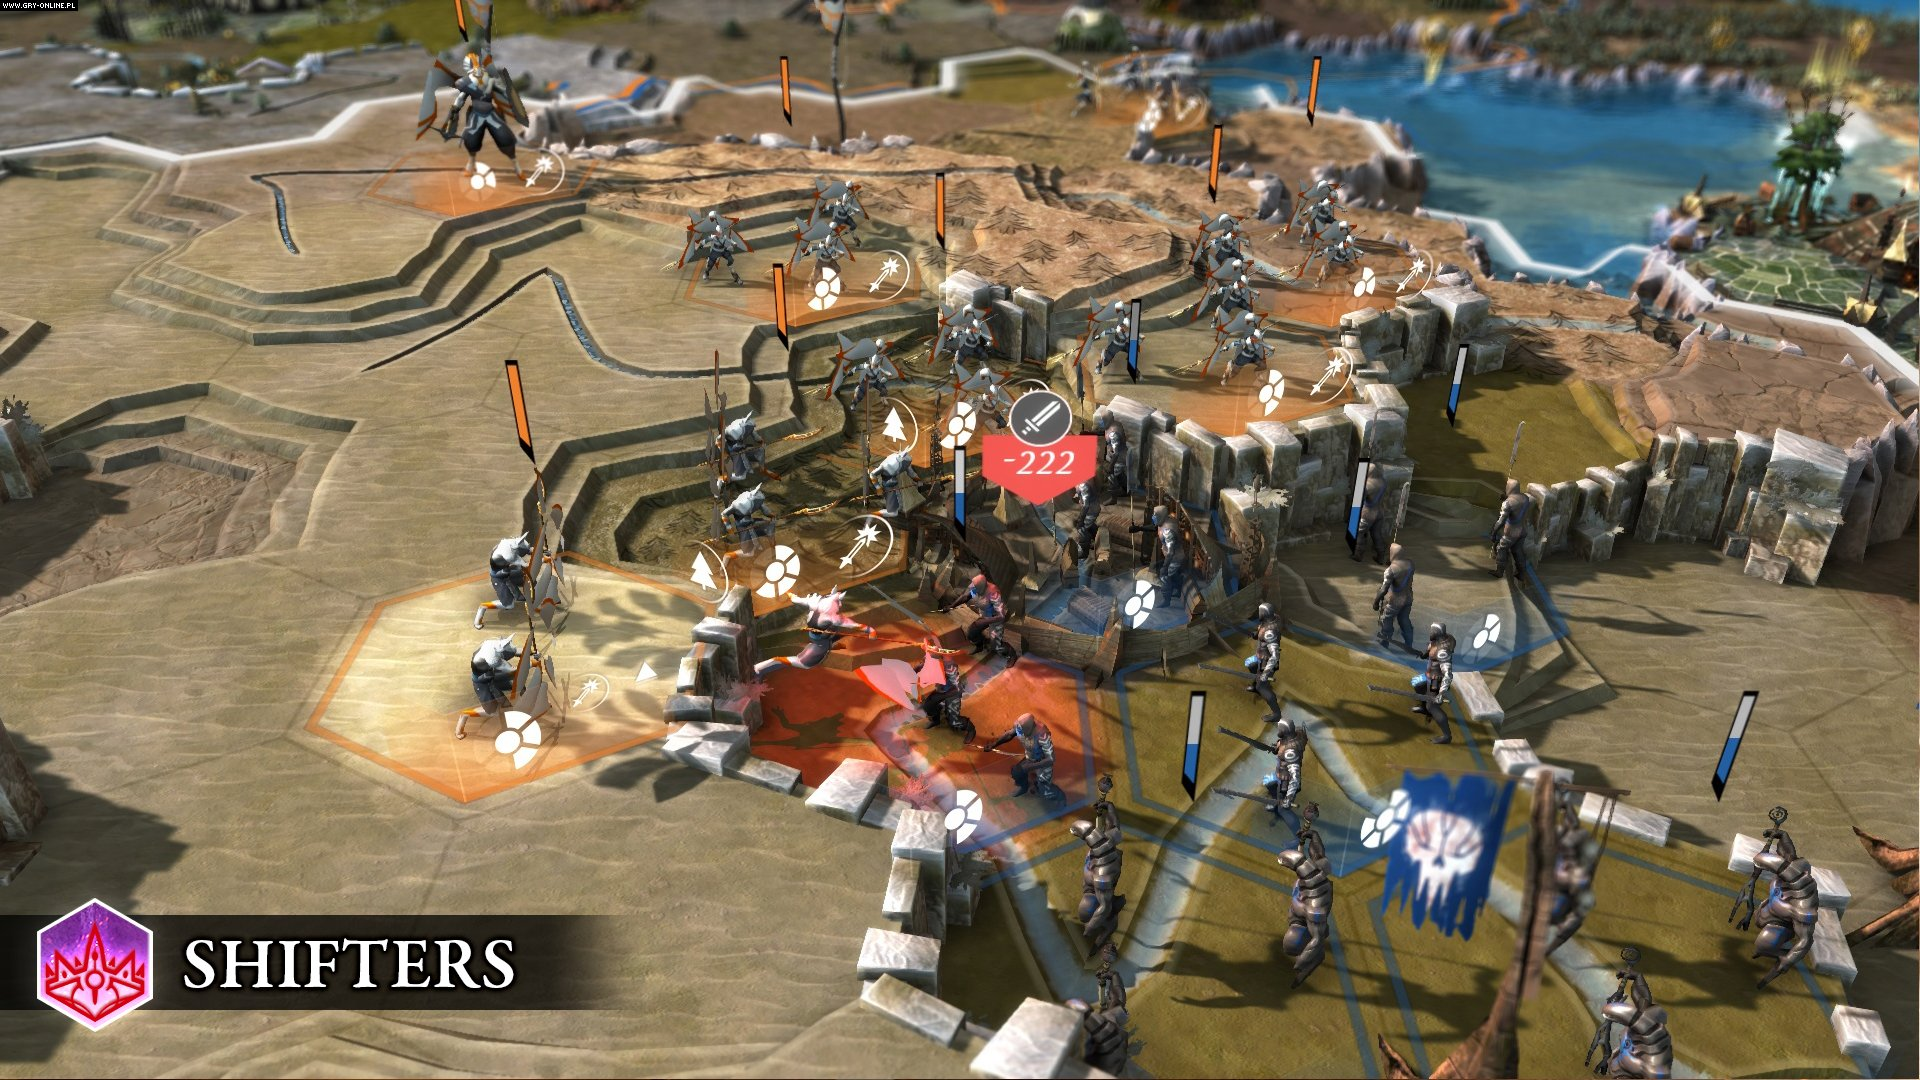 Endless Legend: Shifters PC Gry Screen 3/6, Amplitude Studios, Iceberg Interactive